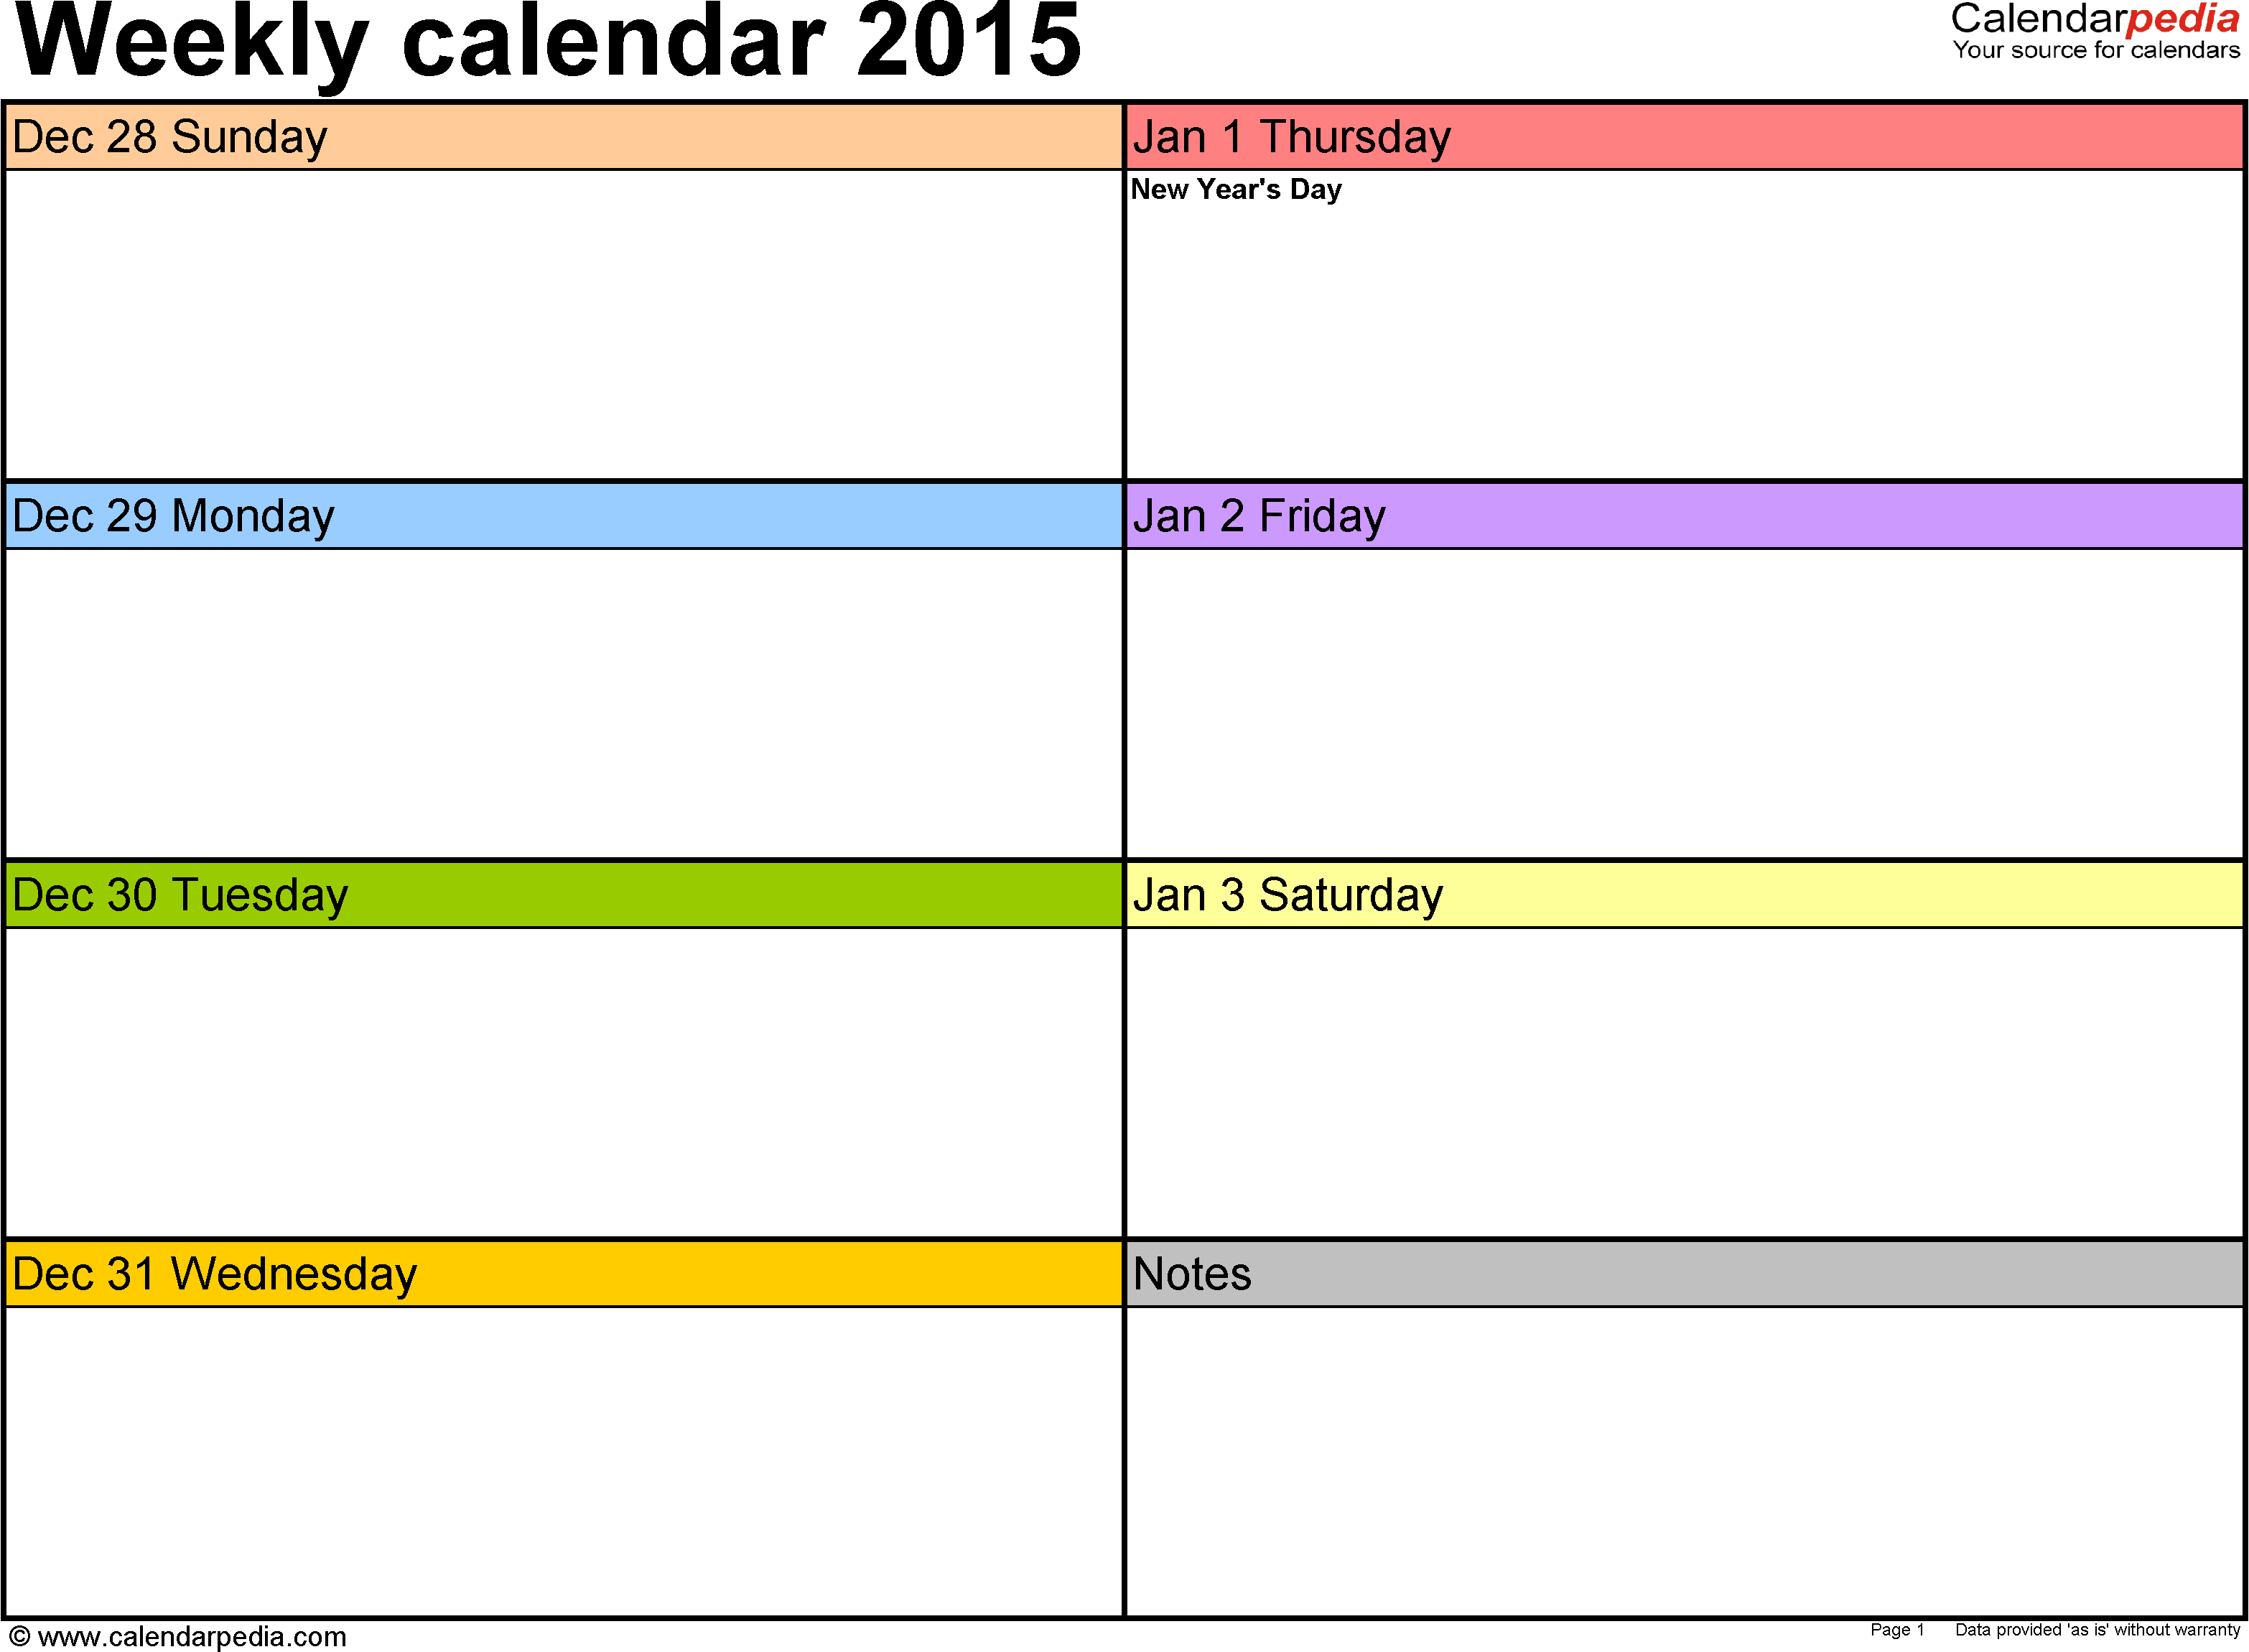 image about Free Printable Weekly Schedule called Weekly calendar 2015 for Phrase - 12 totally free printable templates